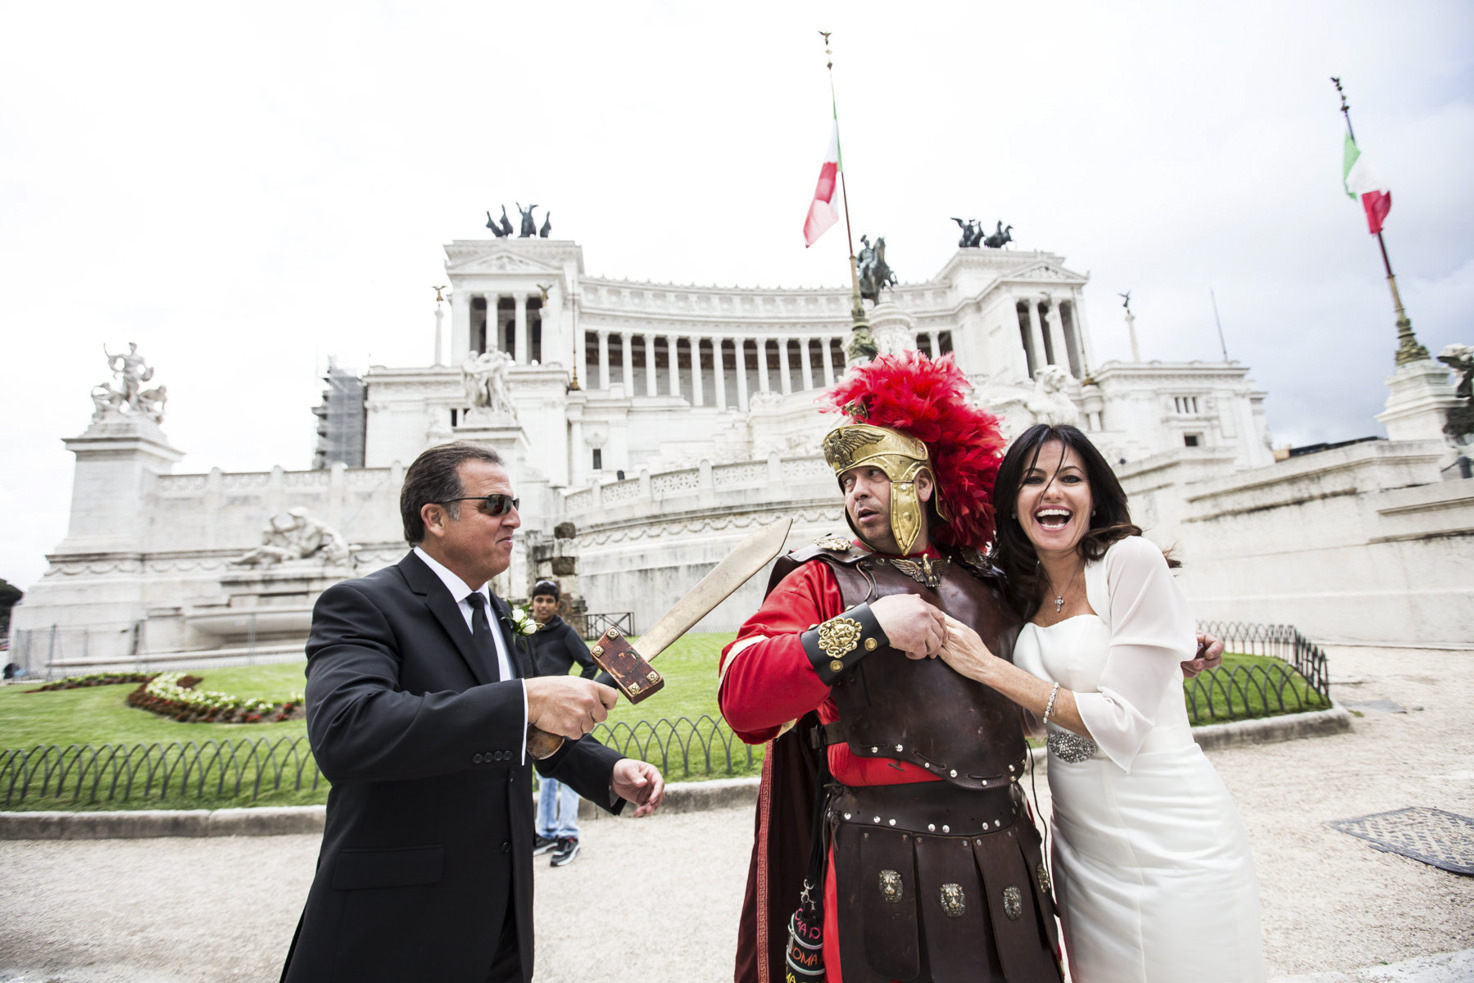 Bride and groom with a Roman centurione